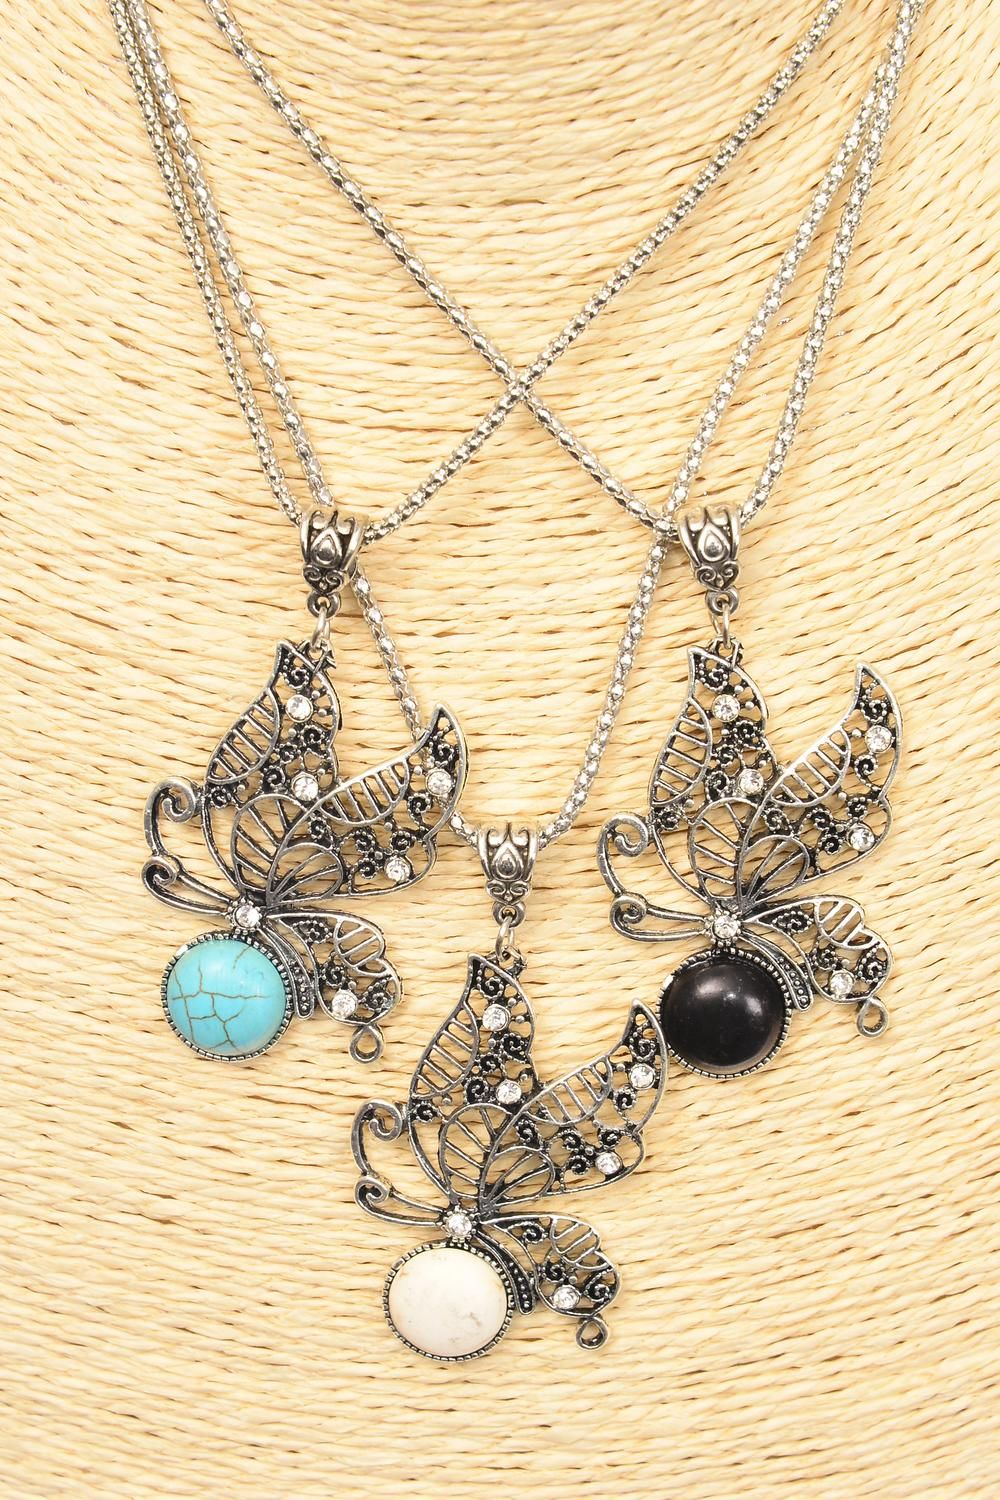 "Necklace Silver Chain Butterfly Semiprecious/DZ Pendant-2"" x 1.25"" Wide,Chain-18"" Extension Chain,4 Ivory,4 Black,4 Turquoise Asst,Hang Tag & OPP Bag & UPC Code"